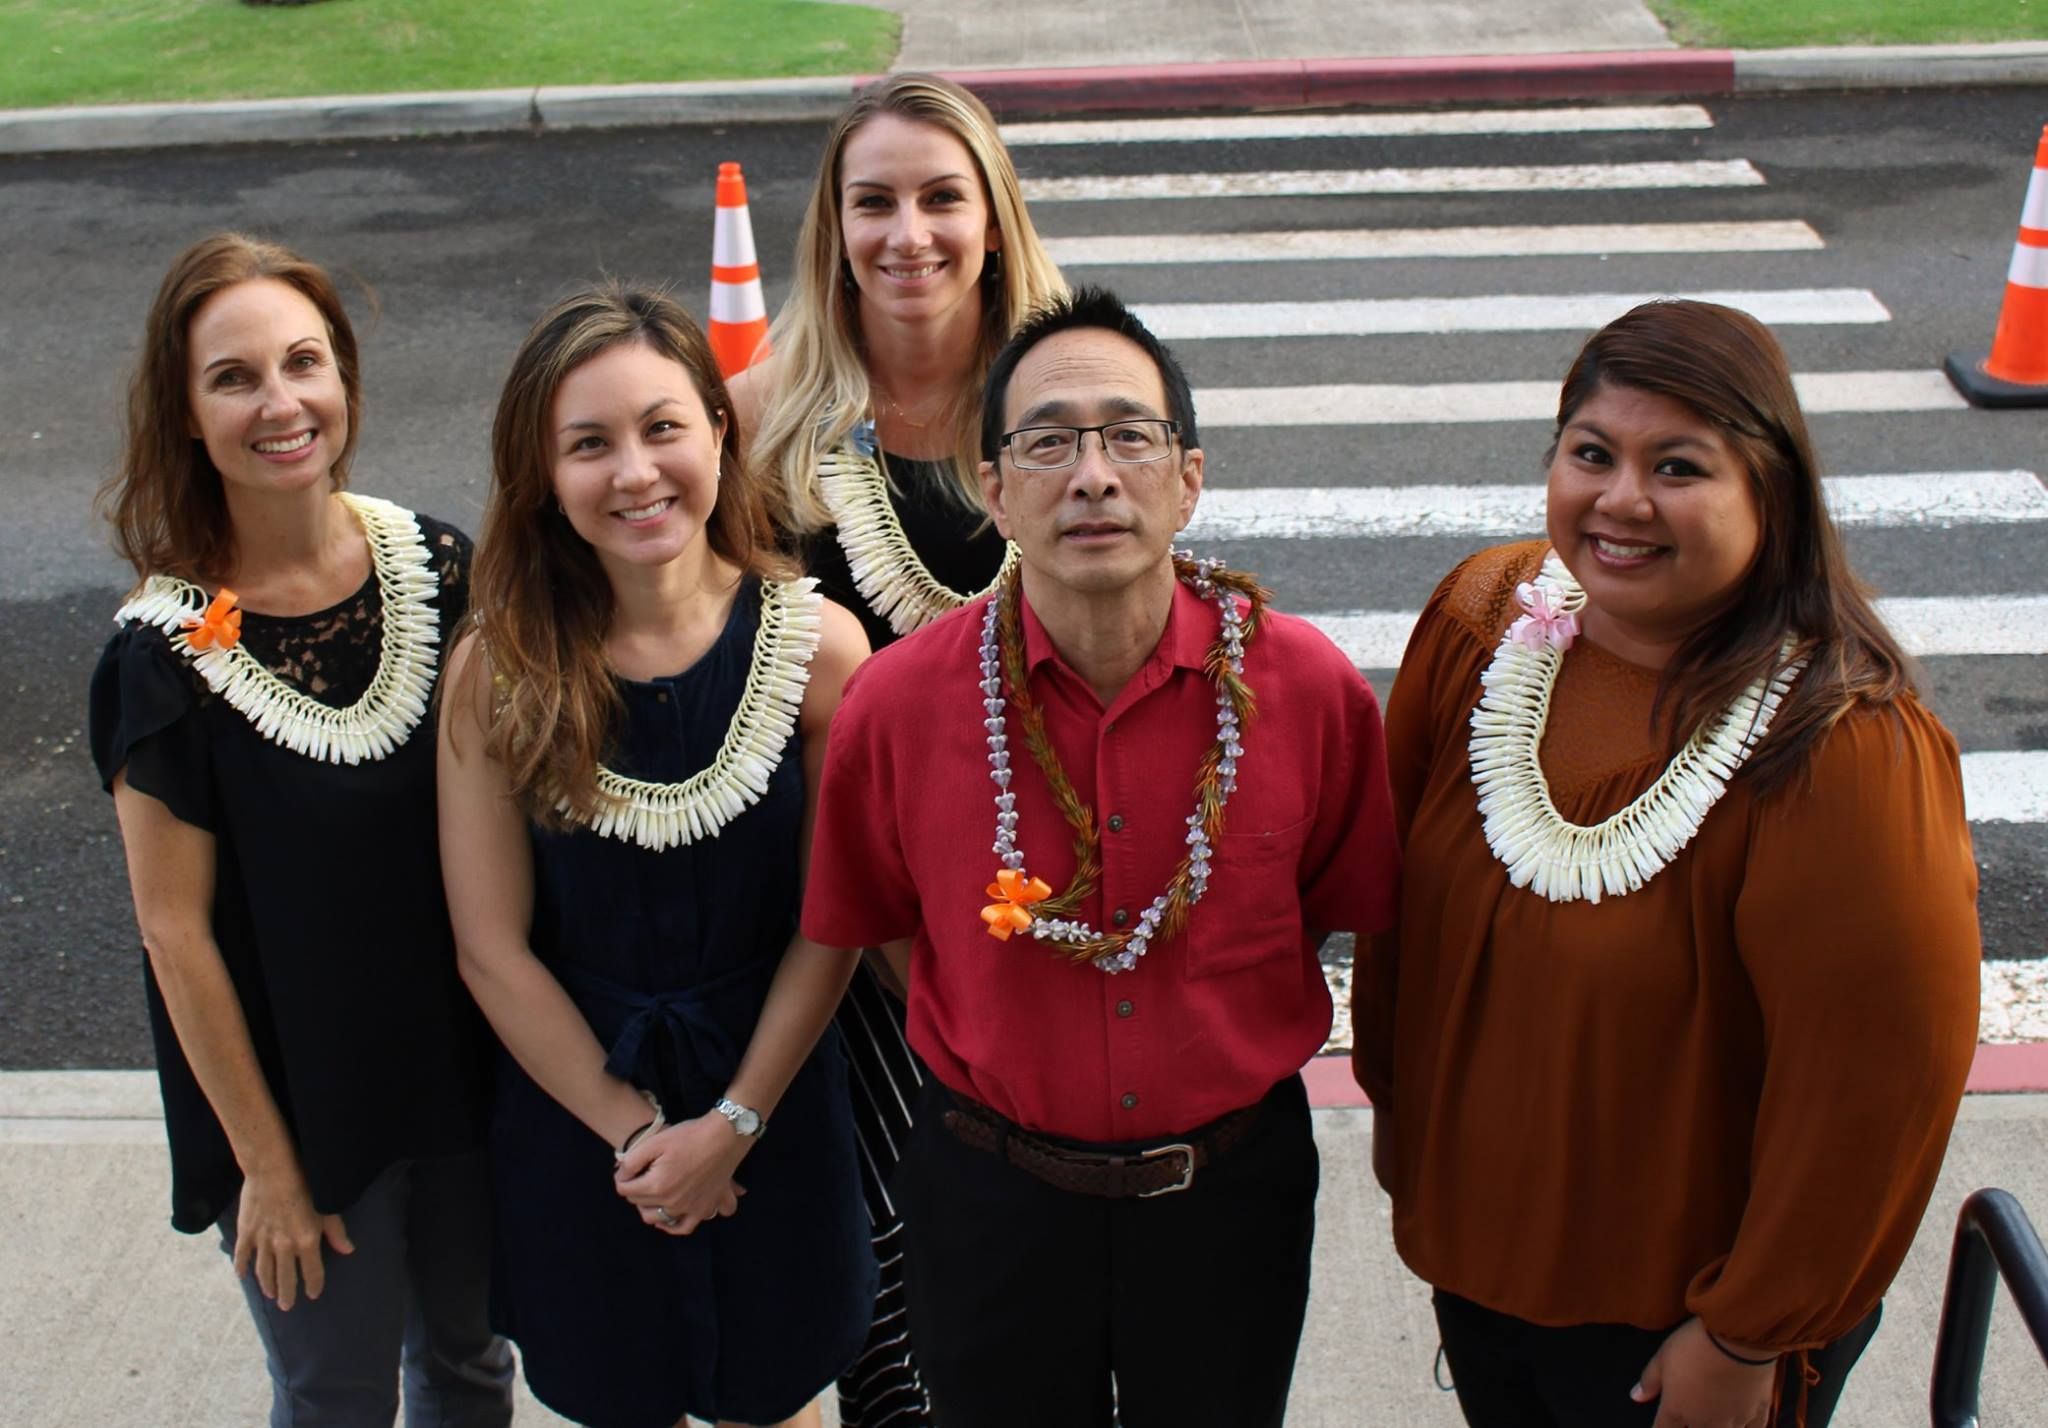 Counselors at Sacred Hearts Academy celebrate National School Counseling Week. (Left to right) Fiona Hayashi, Marcia Chaddock, Angela Dolan, Randy Fong and Anna Miyashiro.